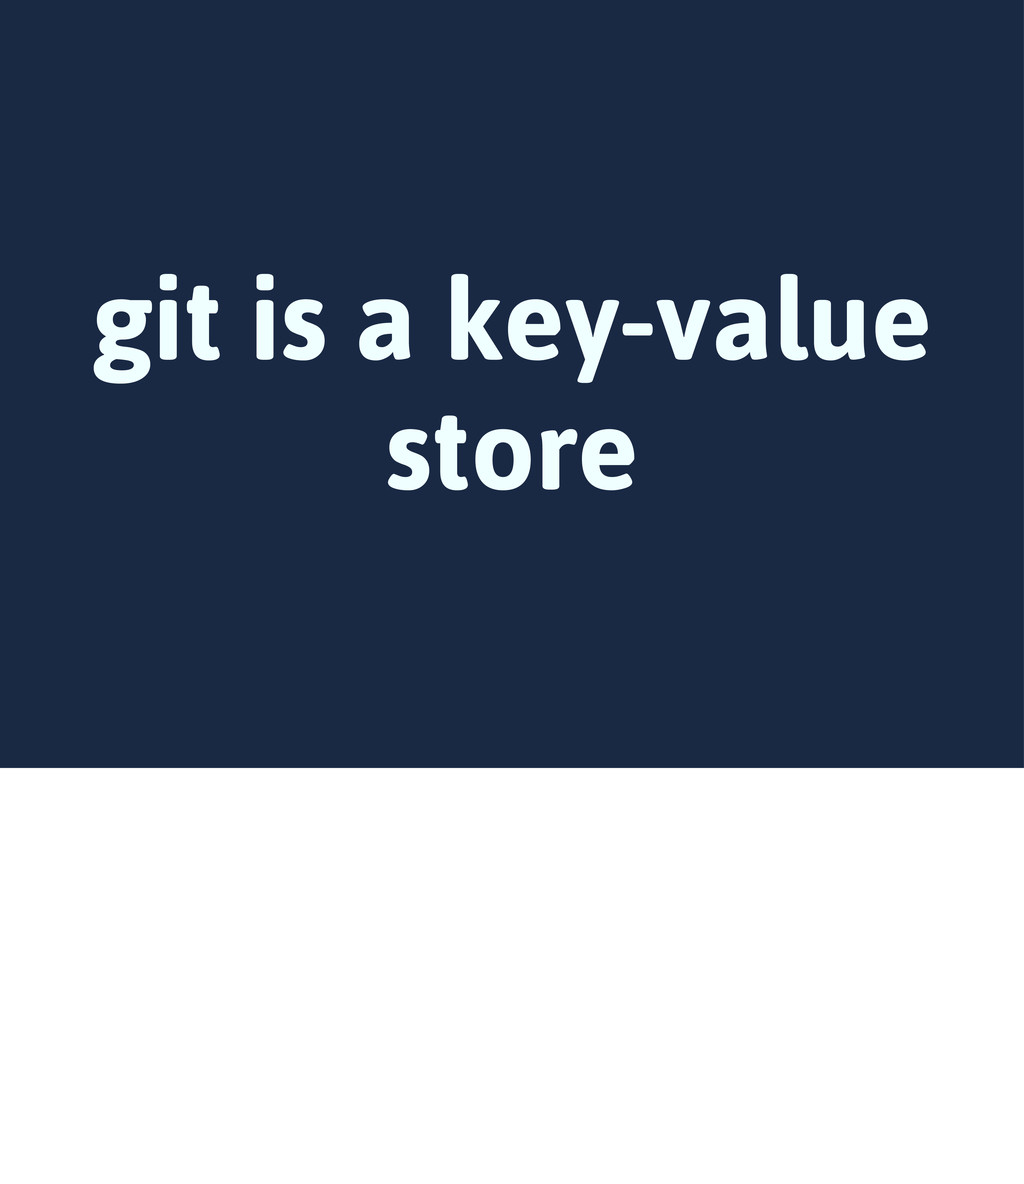 git is a key-value store